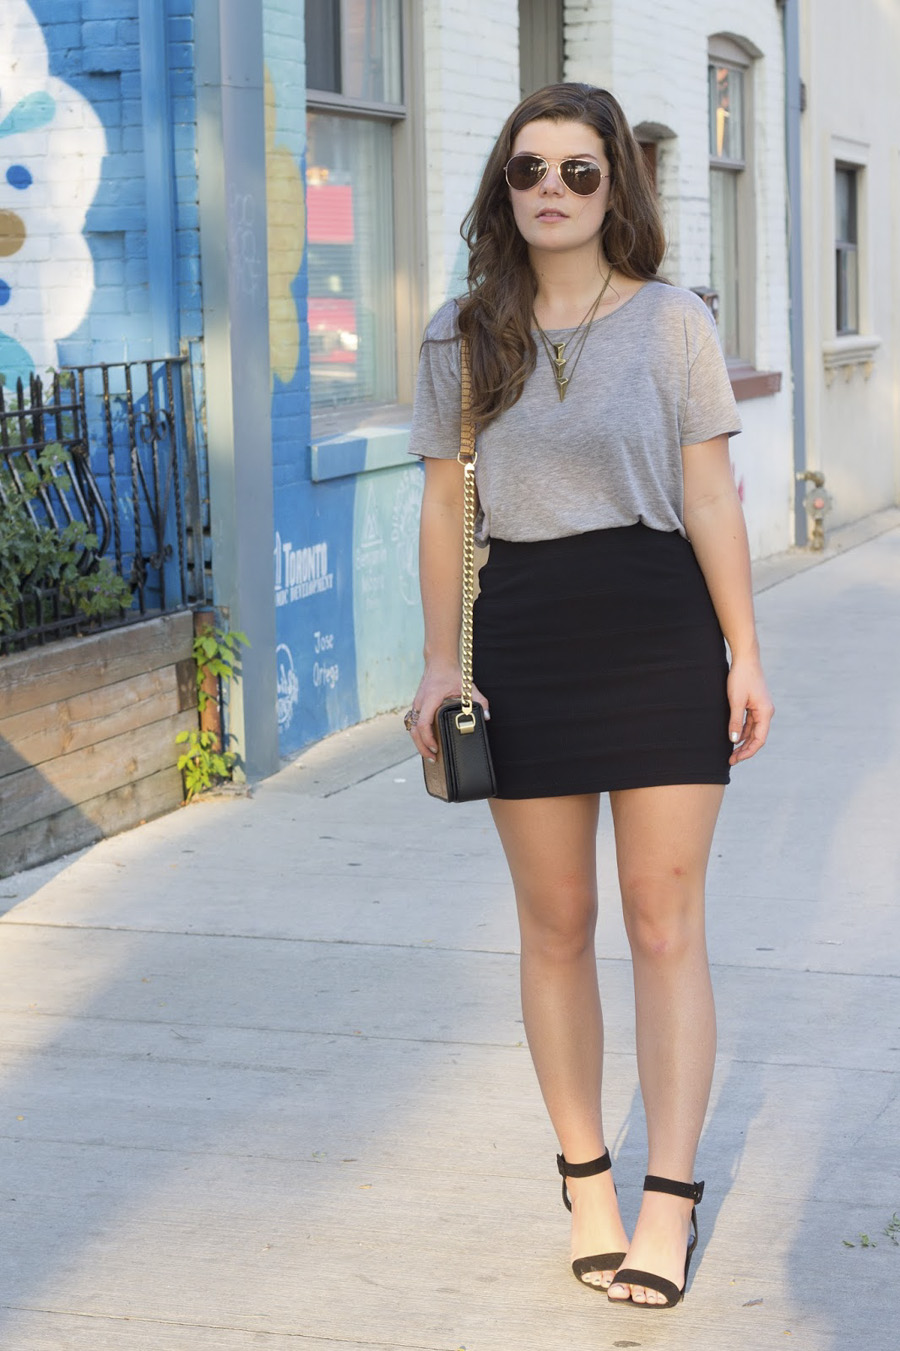 miniskirt grey tshirt outfit